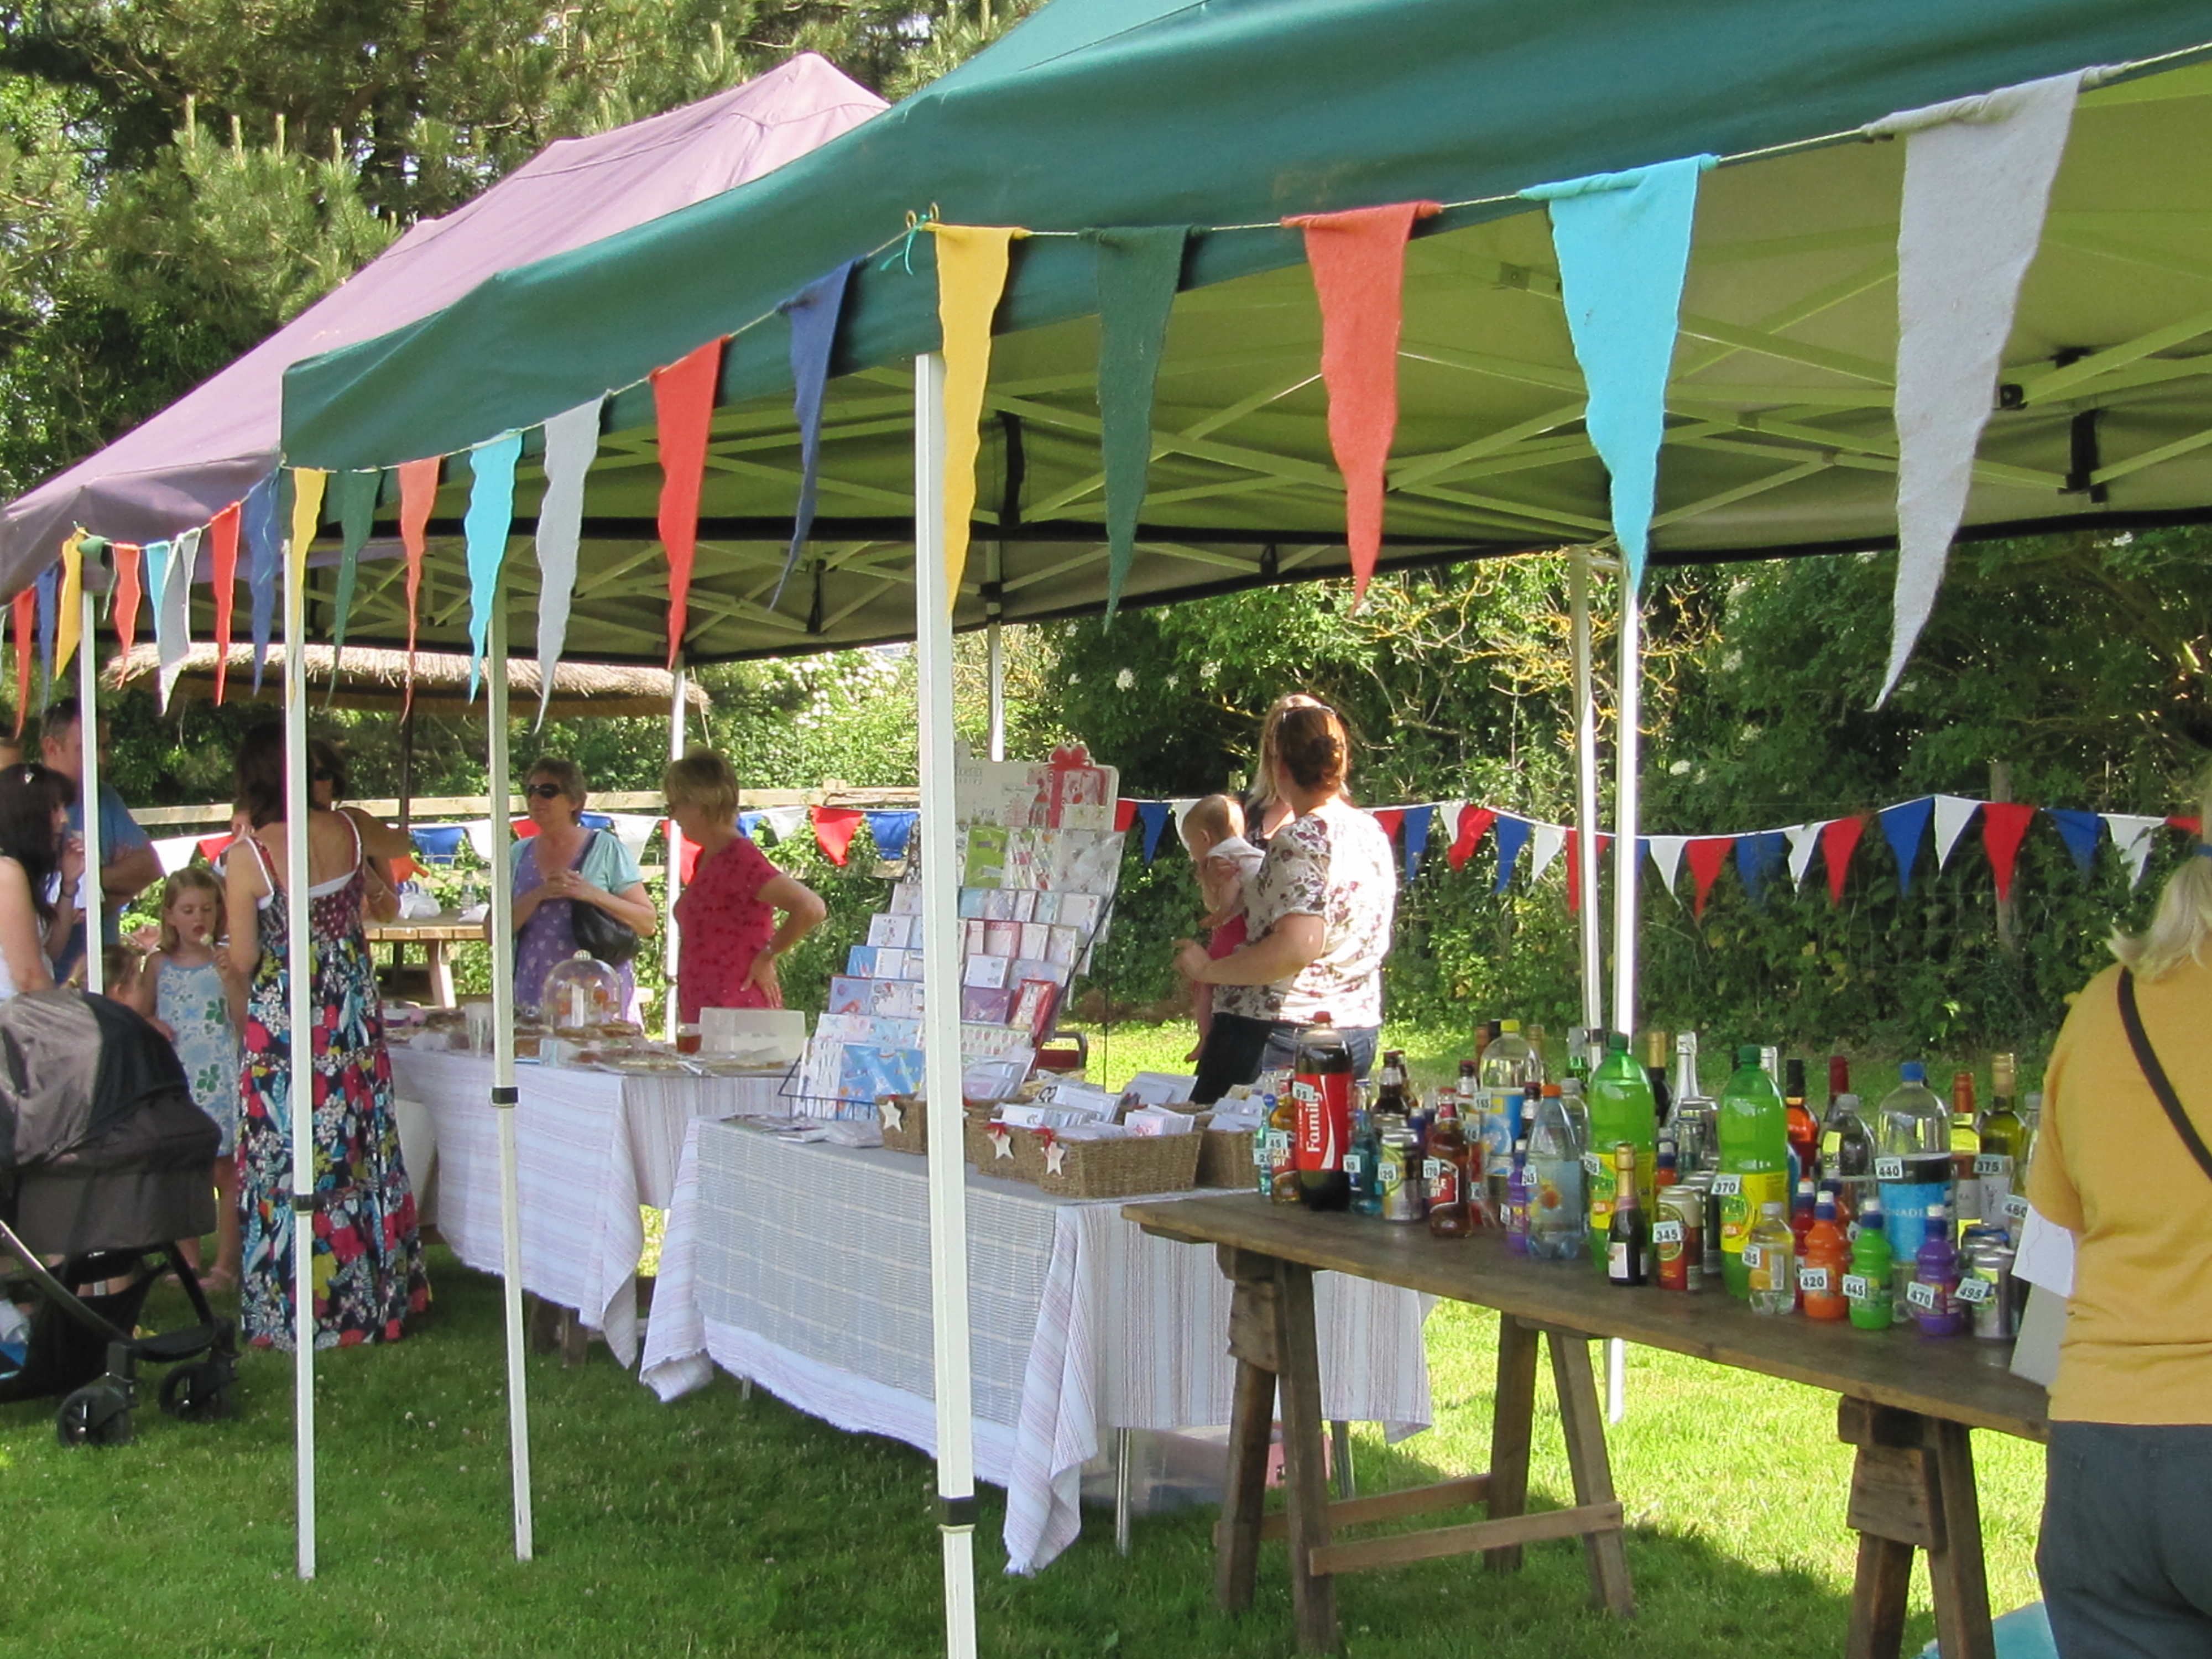 Shotteswell Village Fete Roundup Saturday 6th July 2013